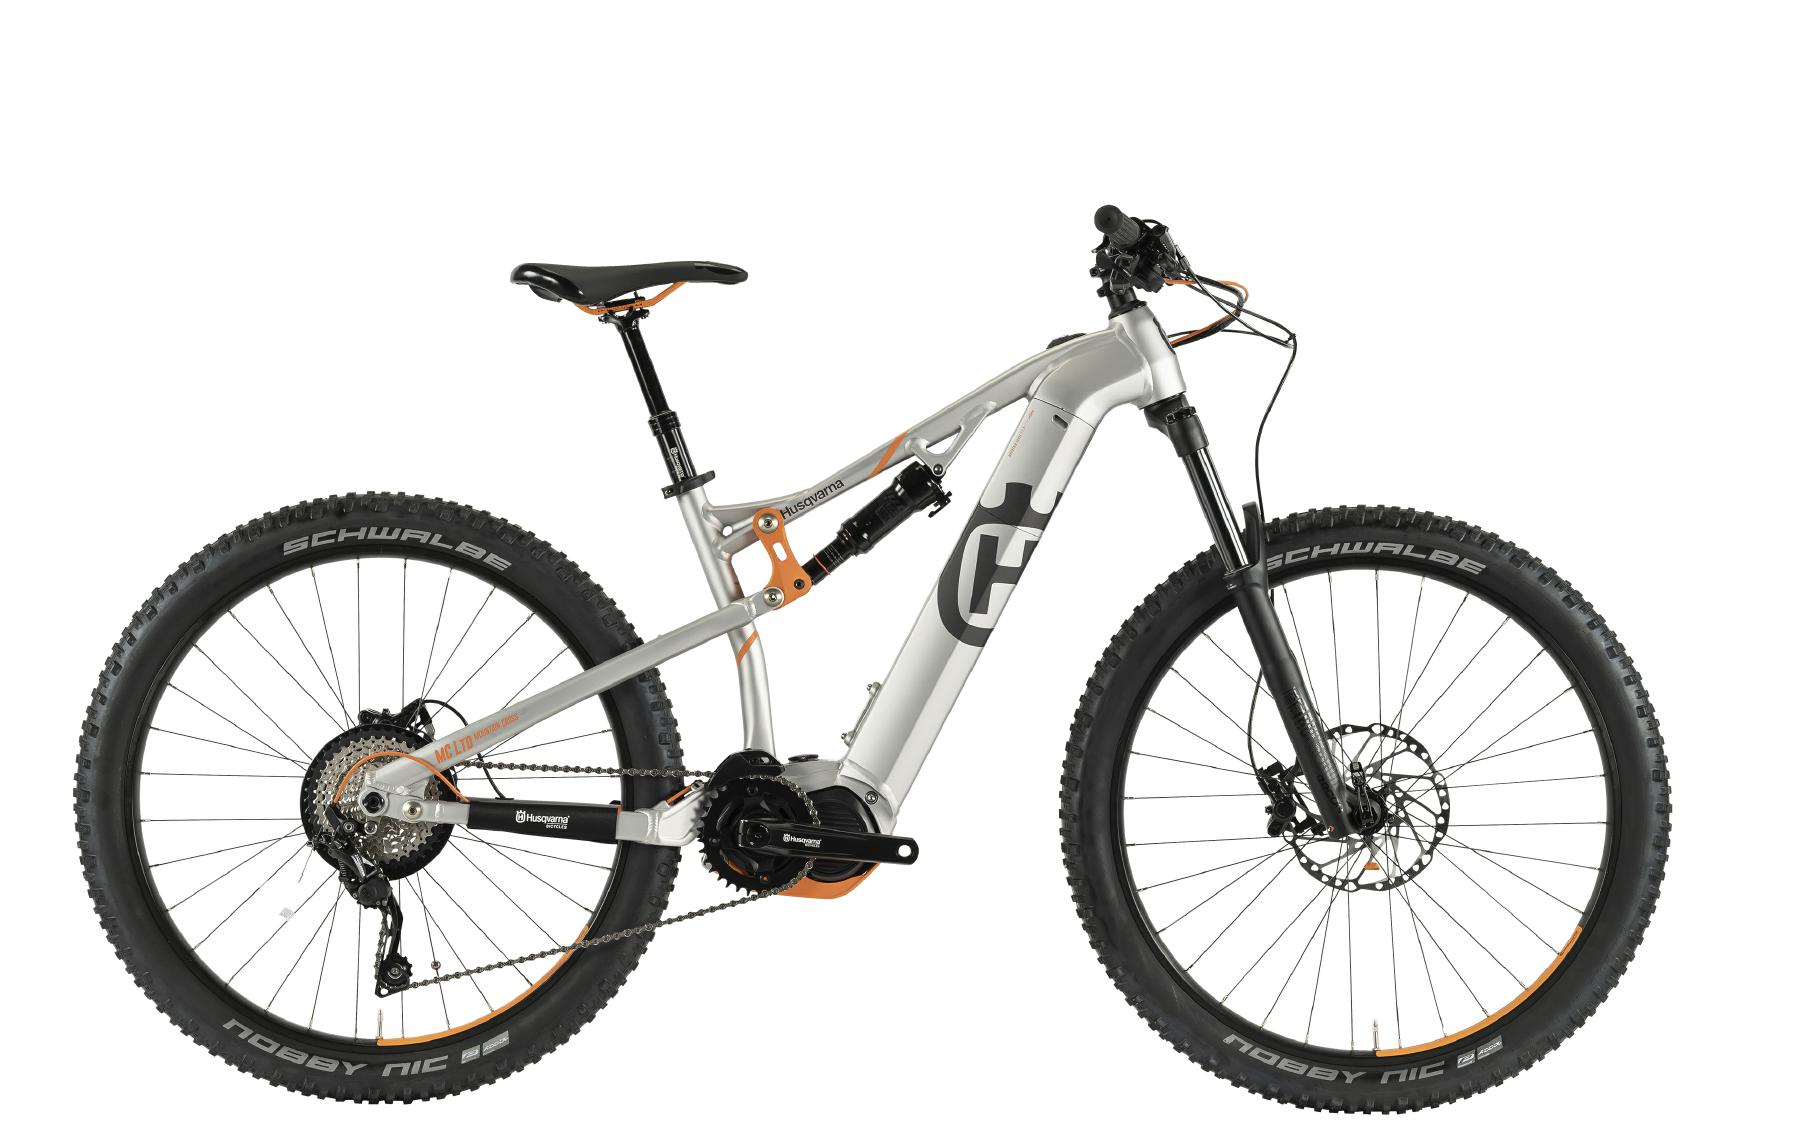 Husqvarna Mountain Cross Anniversary Model MC LTD - silver